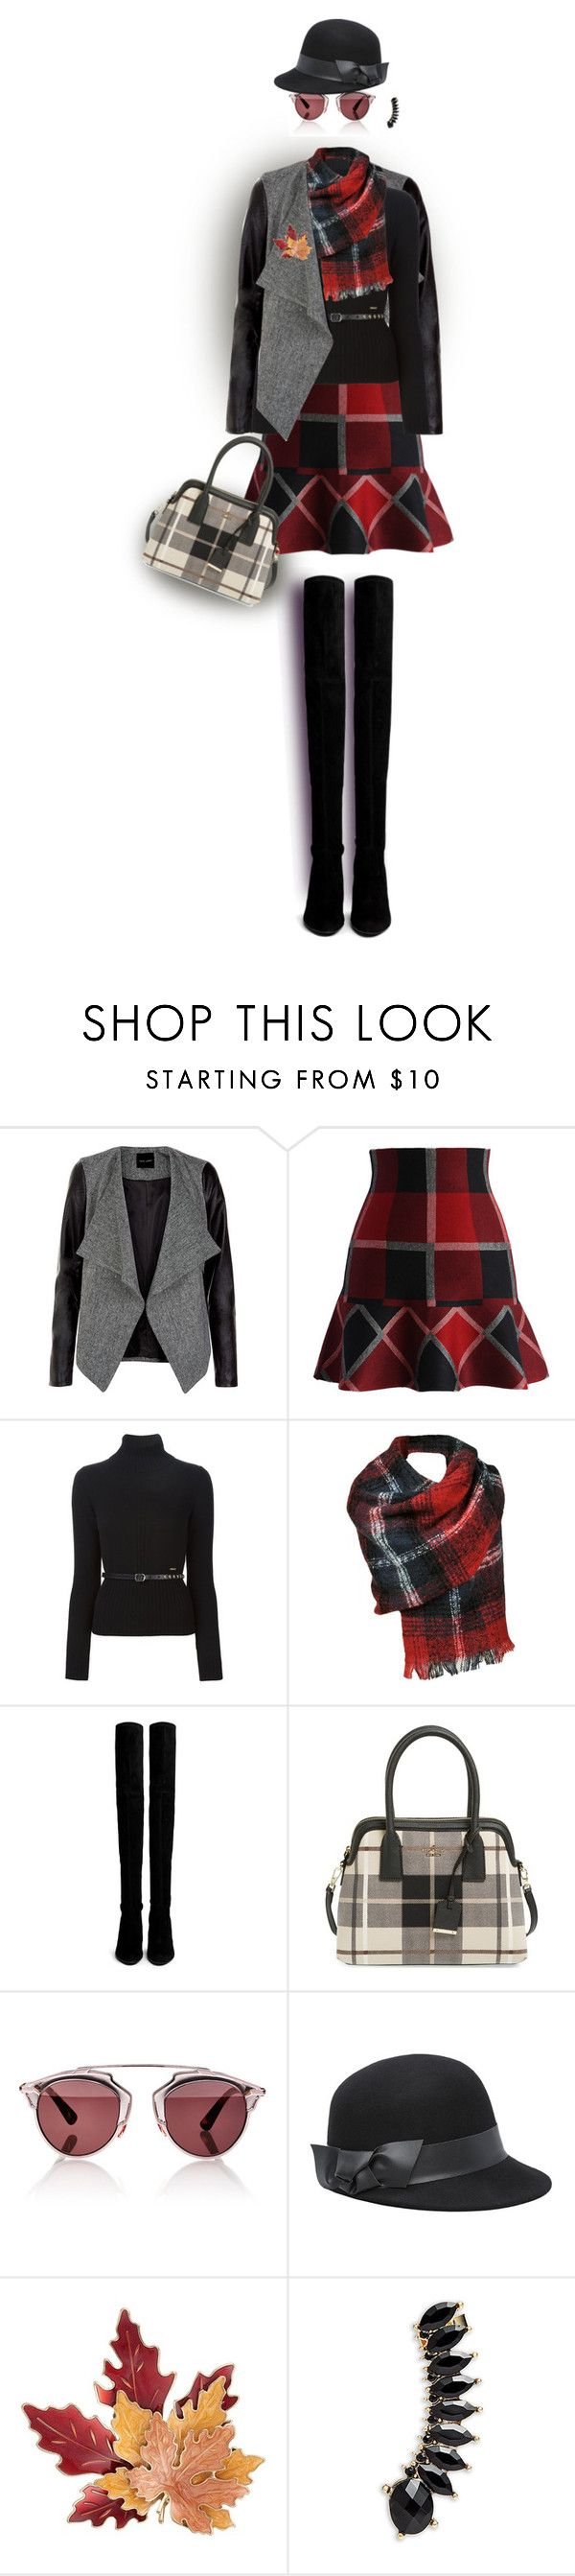 """Style It in Plaid! (OUTFIT ONLY)"" by celeste-menezes ❤ liked on Polyvore featuring Chicwish, Dsquared2, Black Rivet, Stuart Weitzman, Kate Spade, Christian Dior, Bebe, Croft & Barrow and Jules Smith"